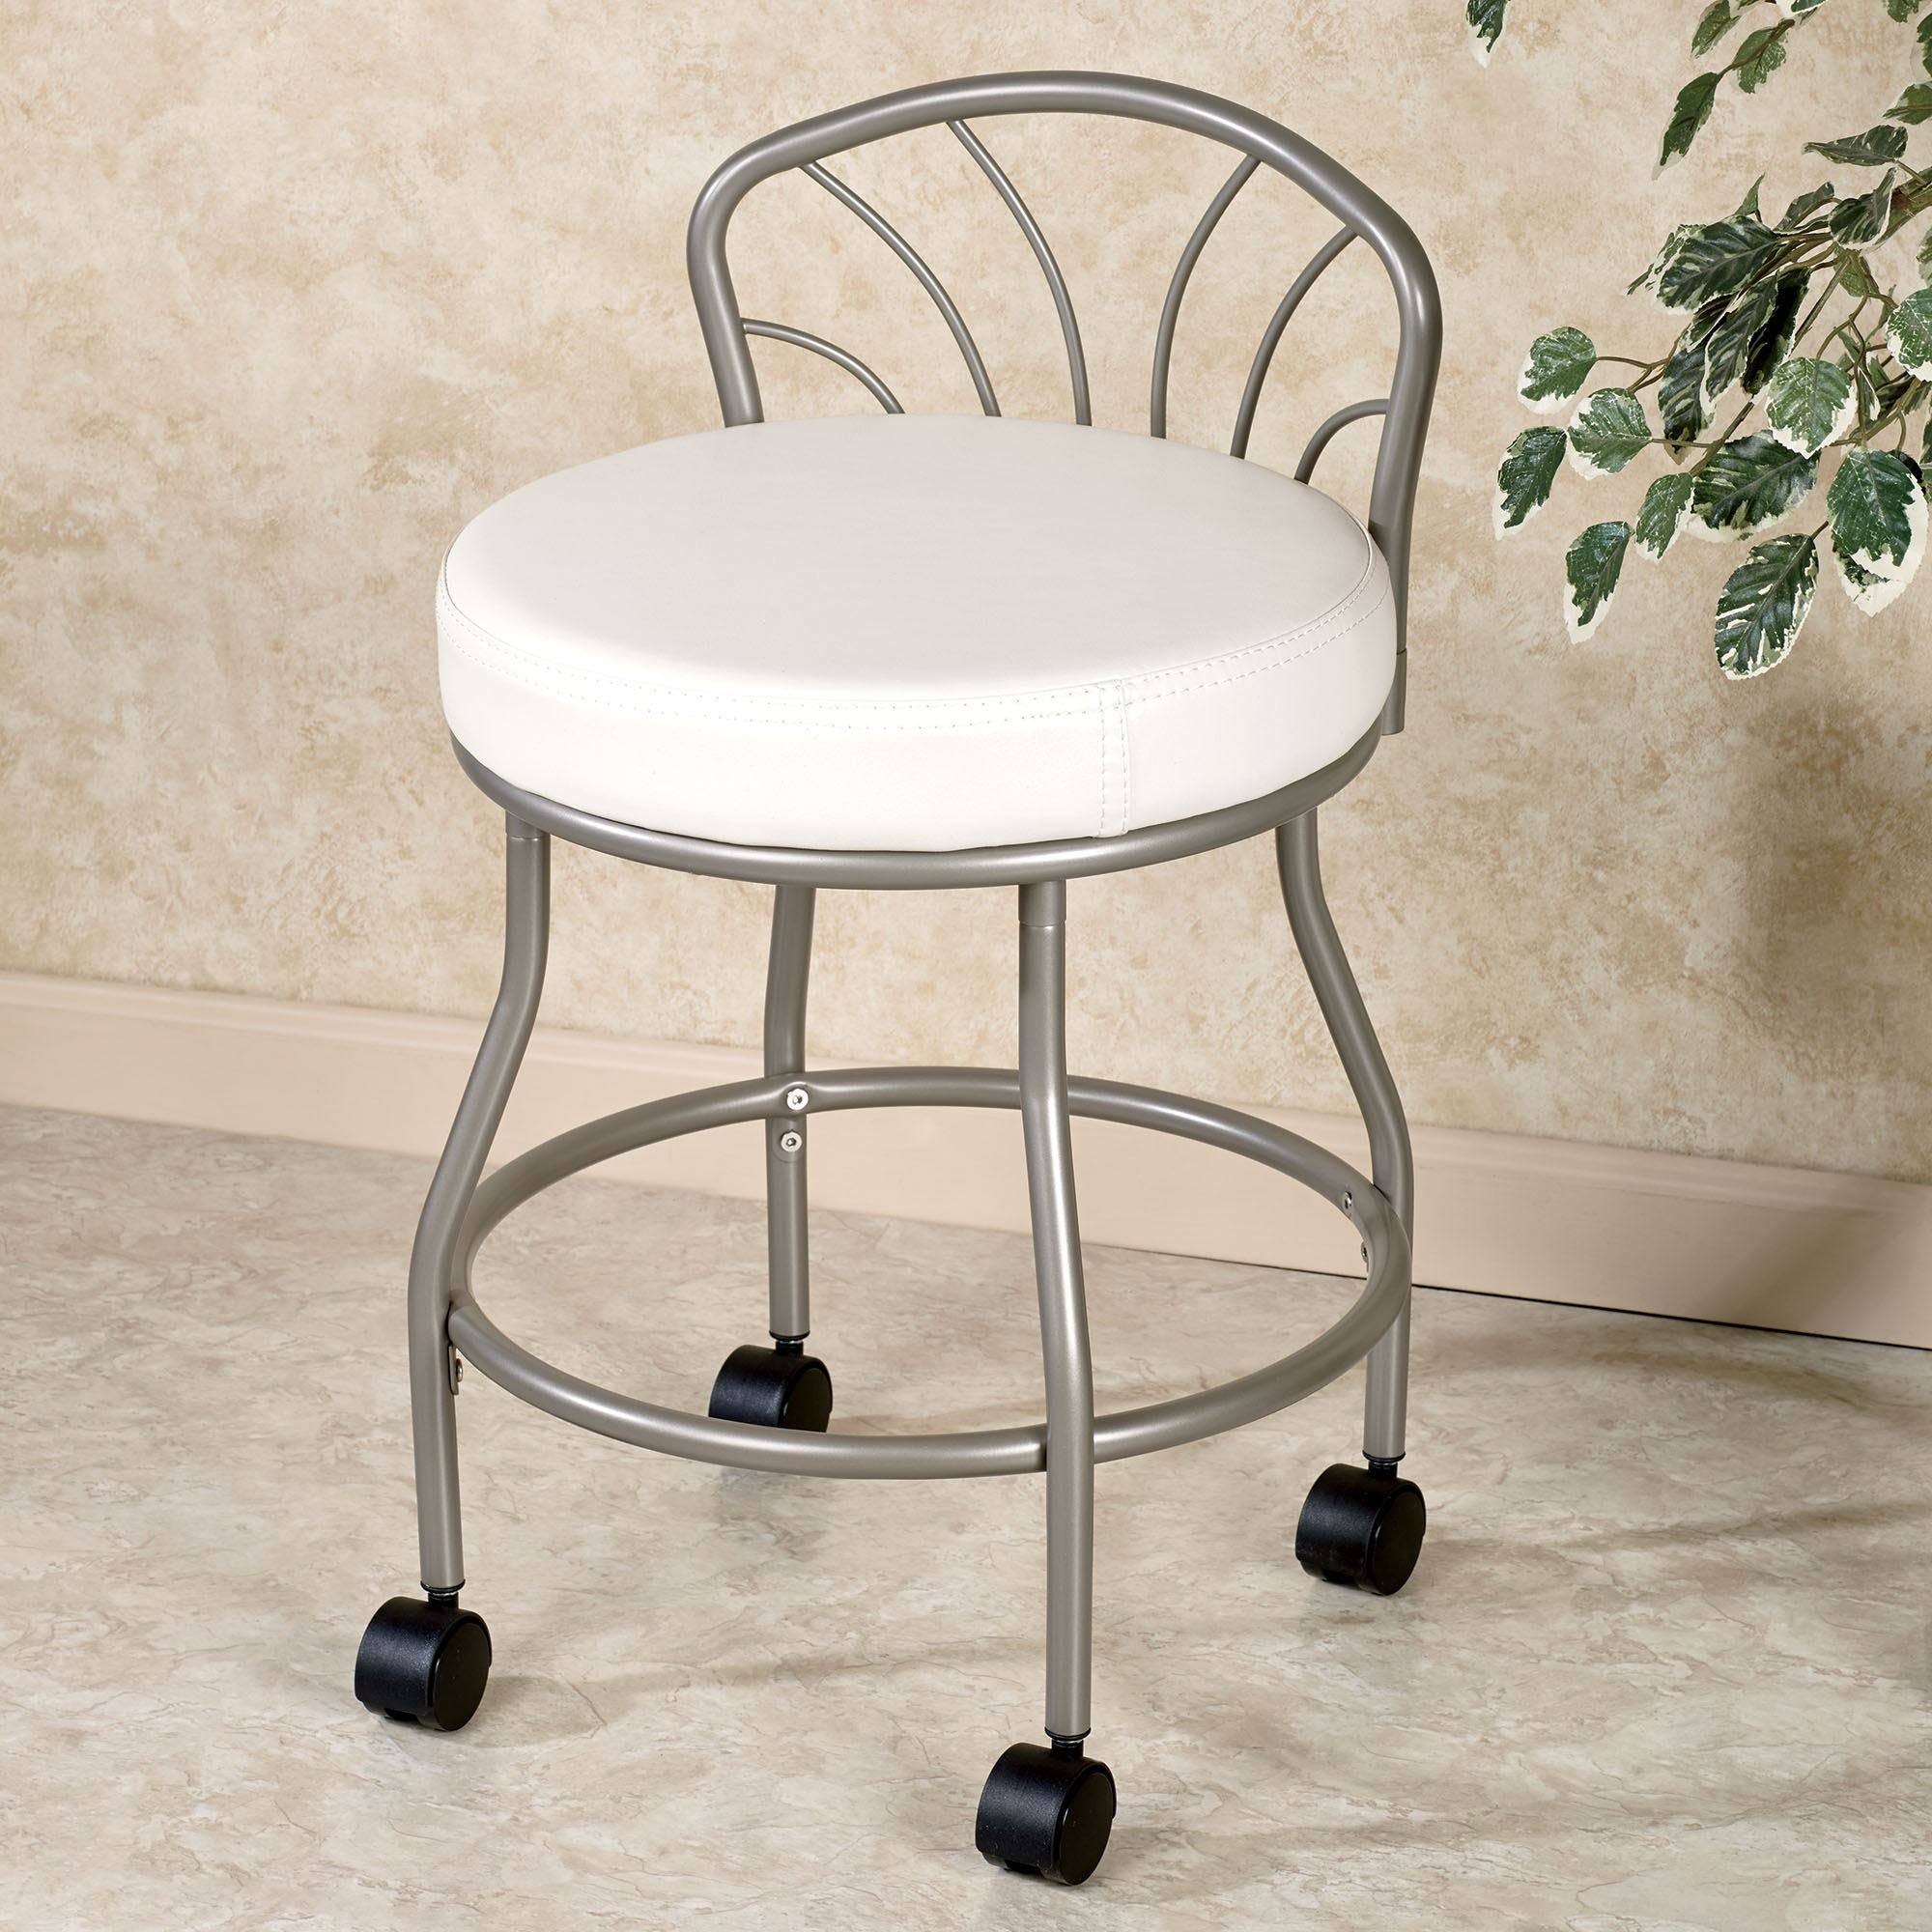 vanity chair with back Flare Back Powder Coat Nickel Finish Vanity Chair with Casters vanity chair with back